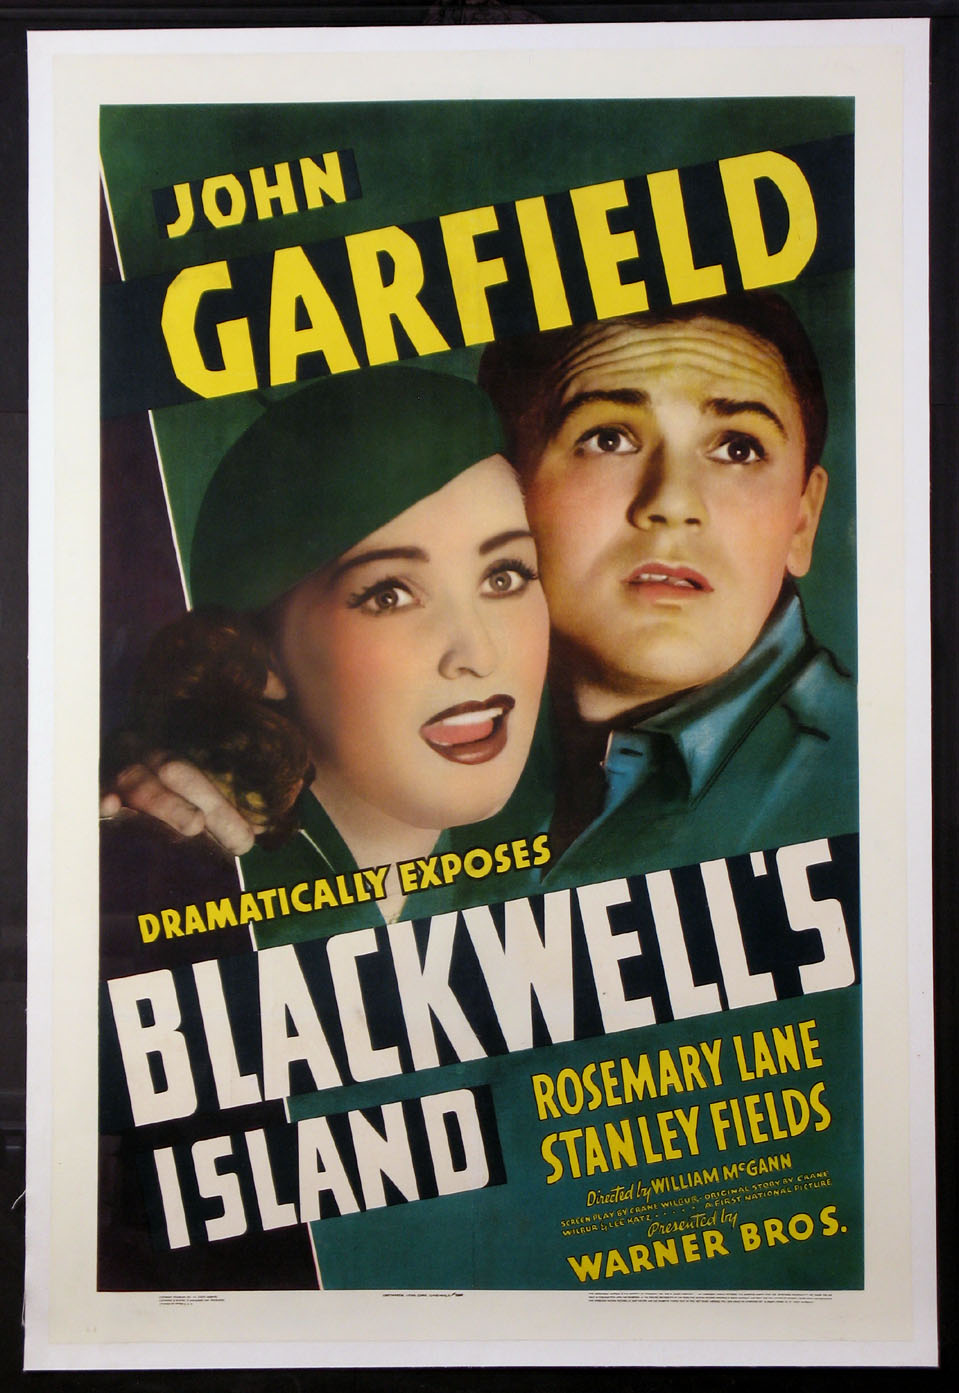 BLACKWELL'S ISLAND @ FilmPosters.com